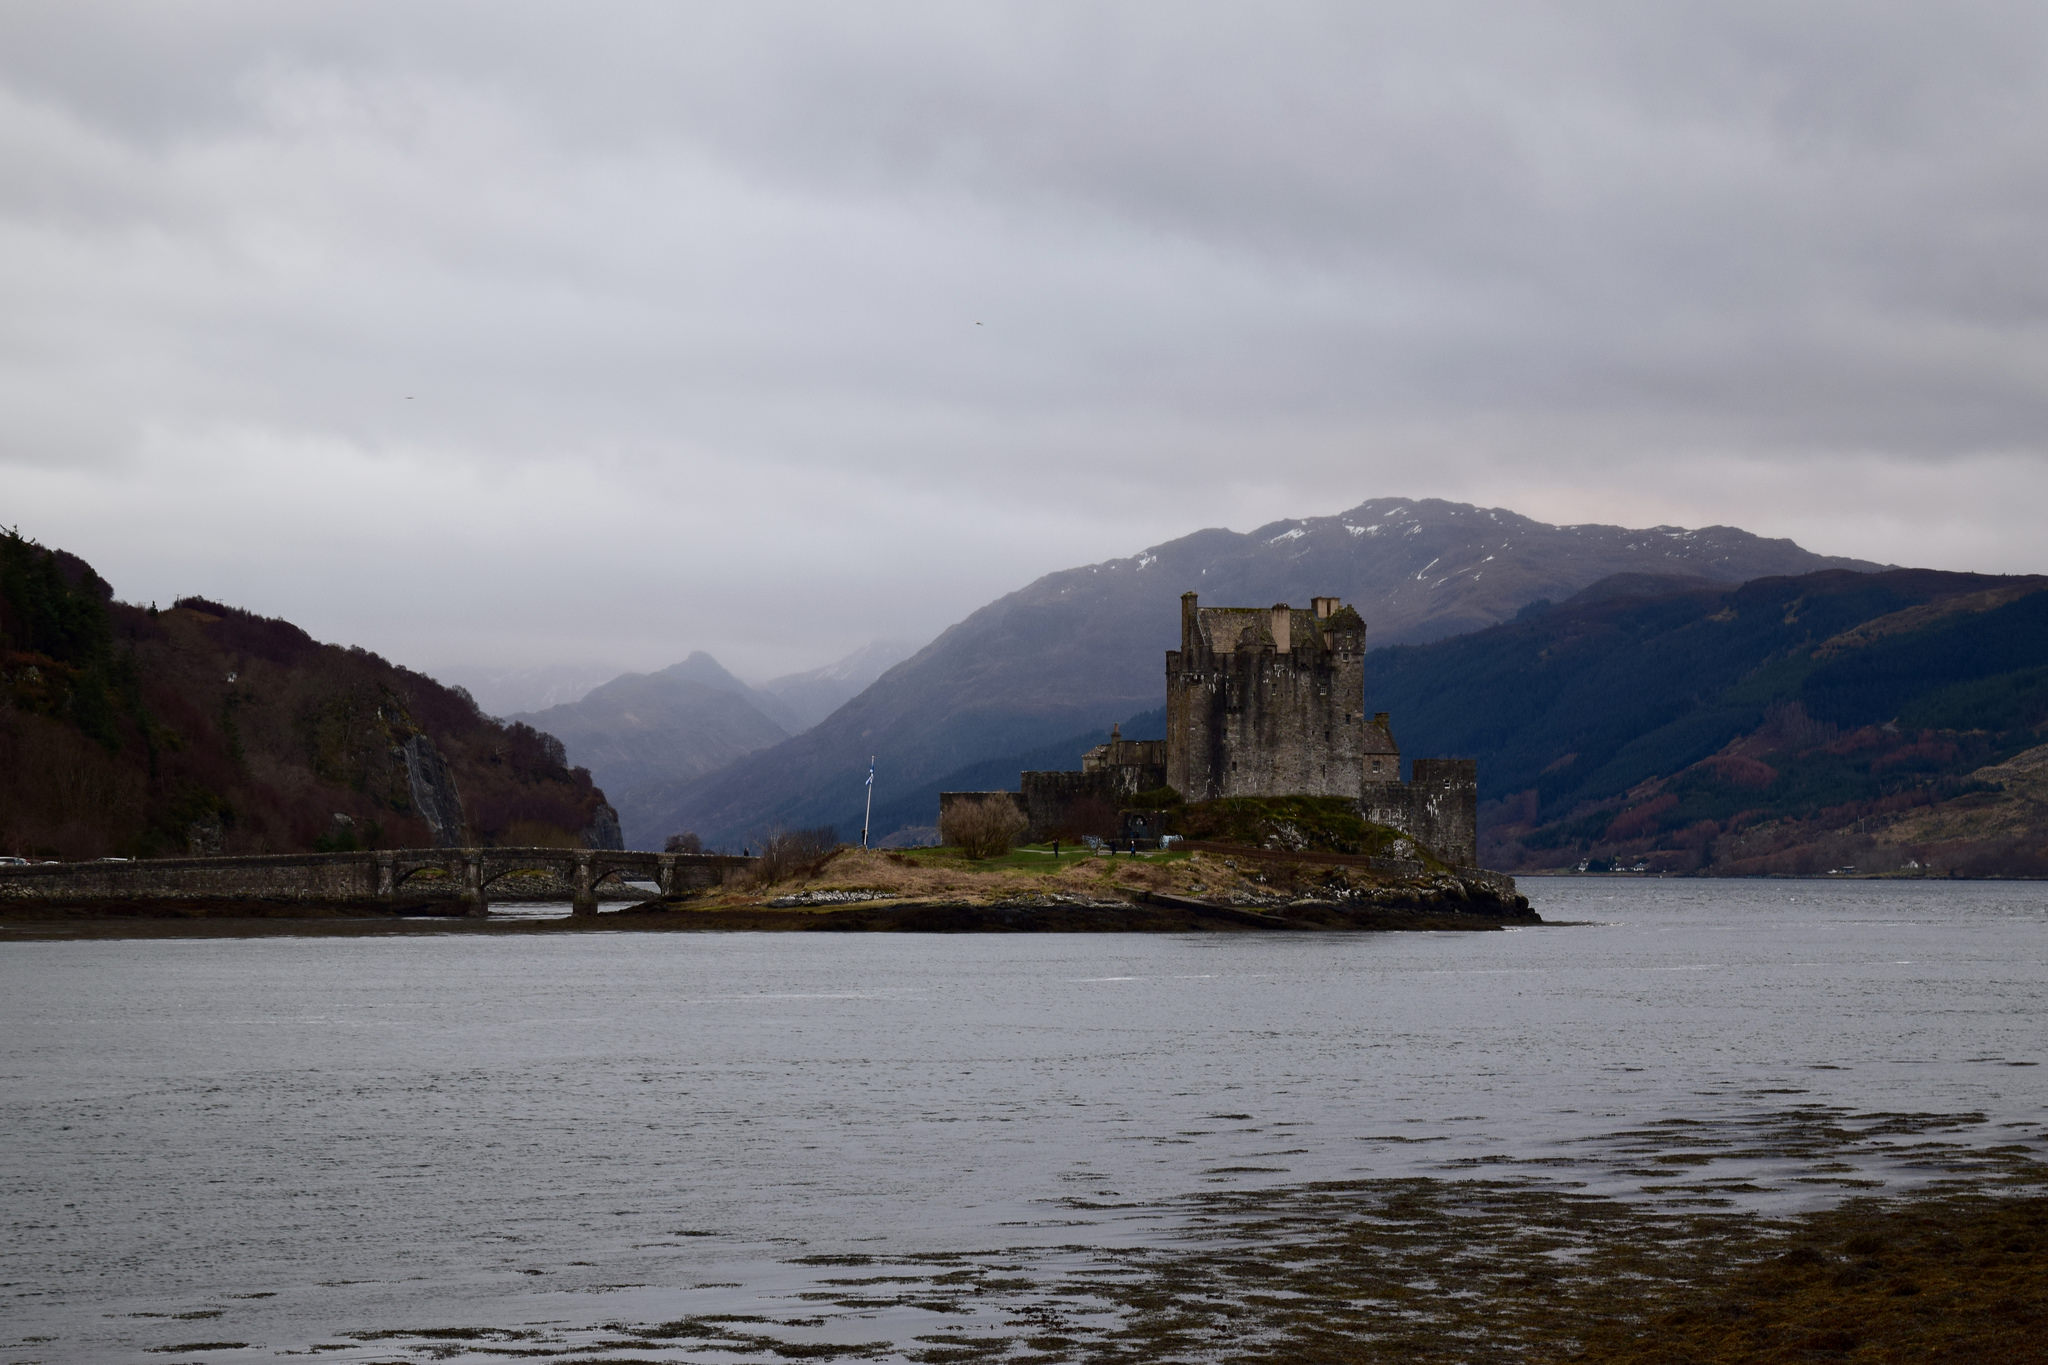 Just before the bridge to the Isle of Skye is Eileen Donan Castle, jutting out into the loch.